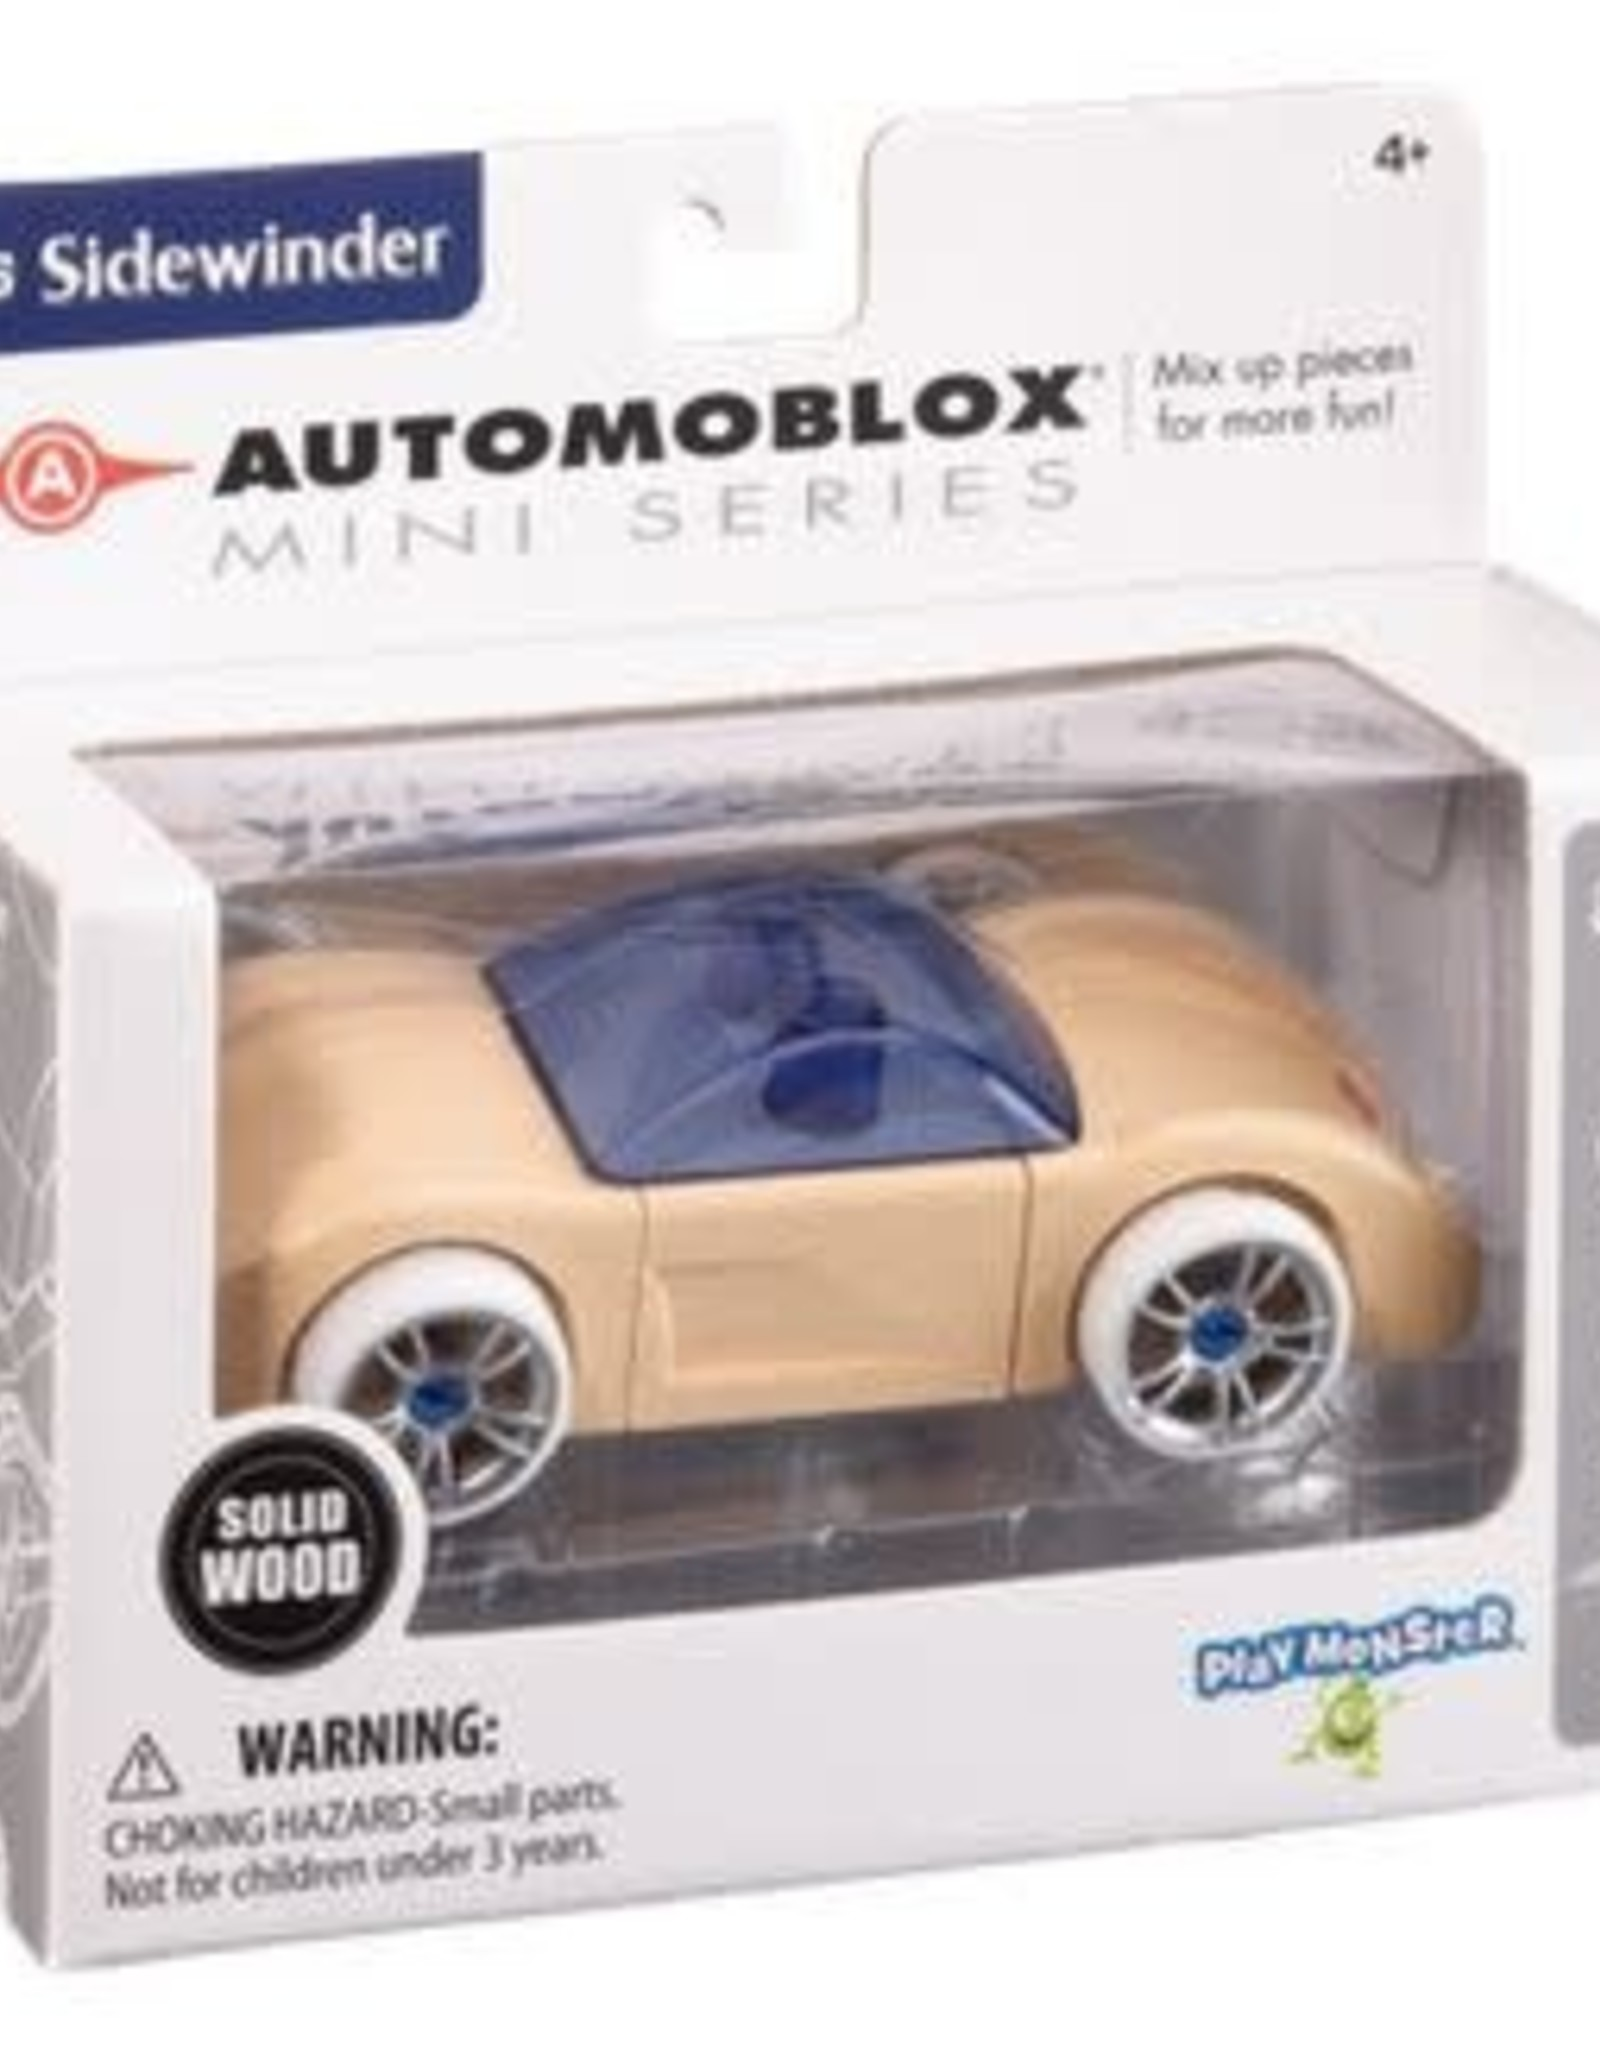 Playmonster C16 Sidewinder Mini Automoblox